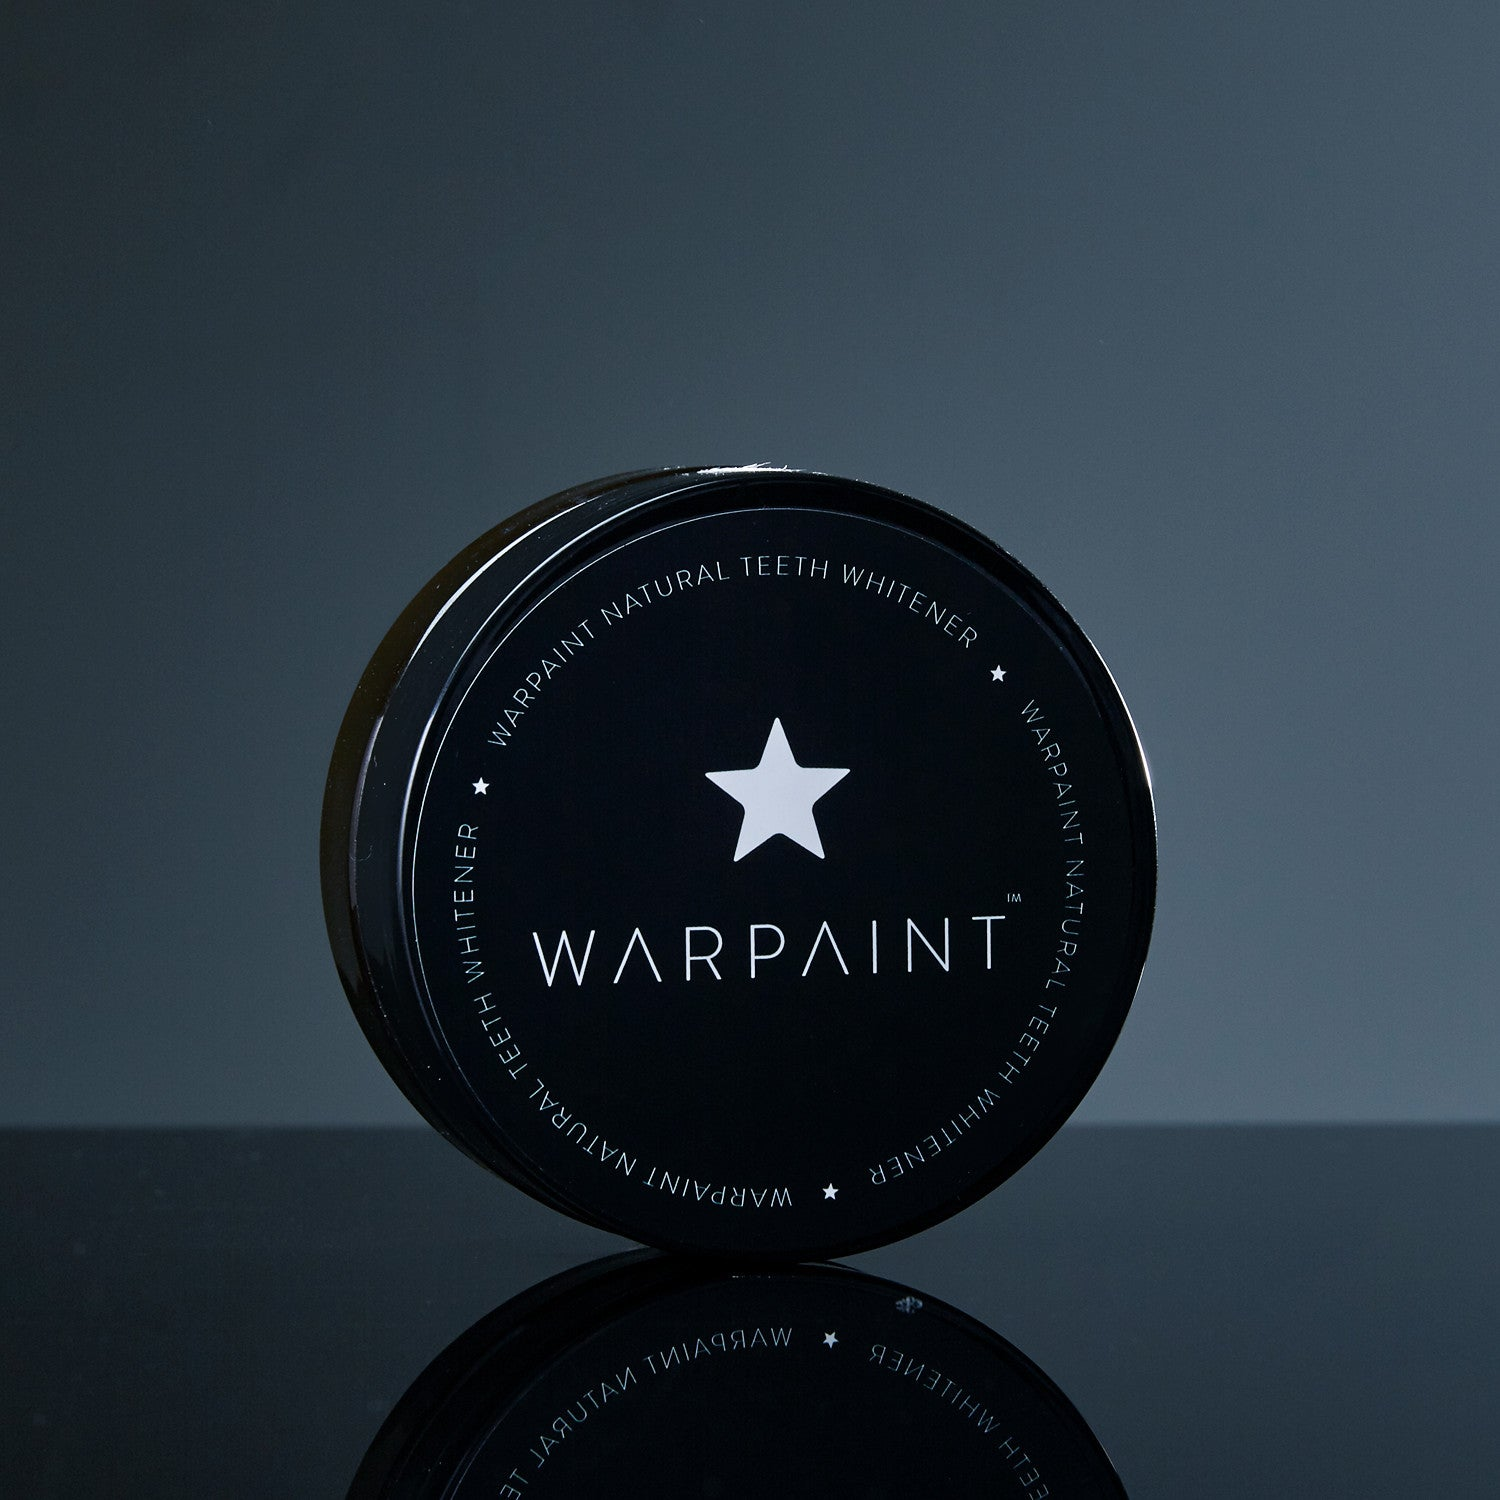 WARPAINT® Natural Teeth Whitener